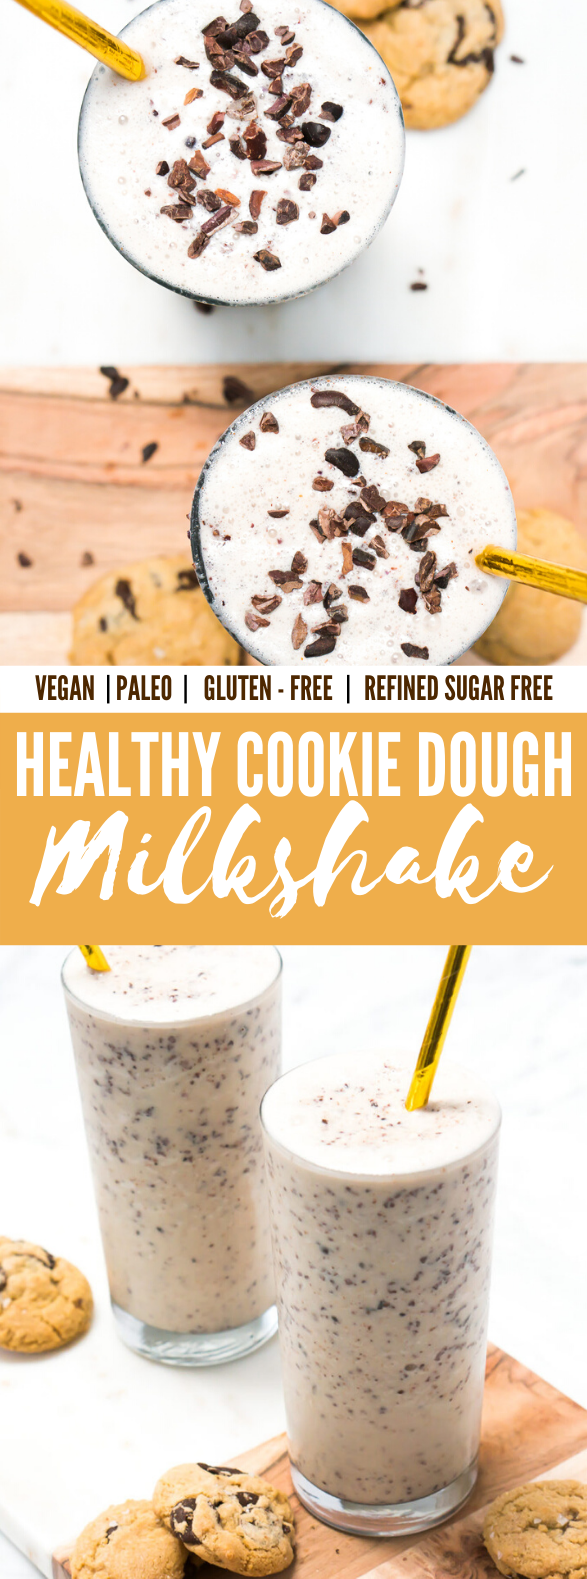 Healthy Cookie Dough Milkshake (Vegan, Paleo, Gluten Free, Refined Sugar Free) #drinks #healthydrink